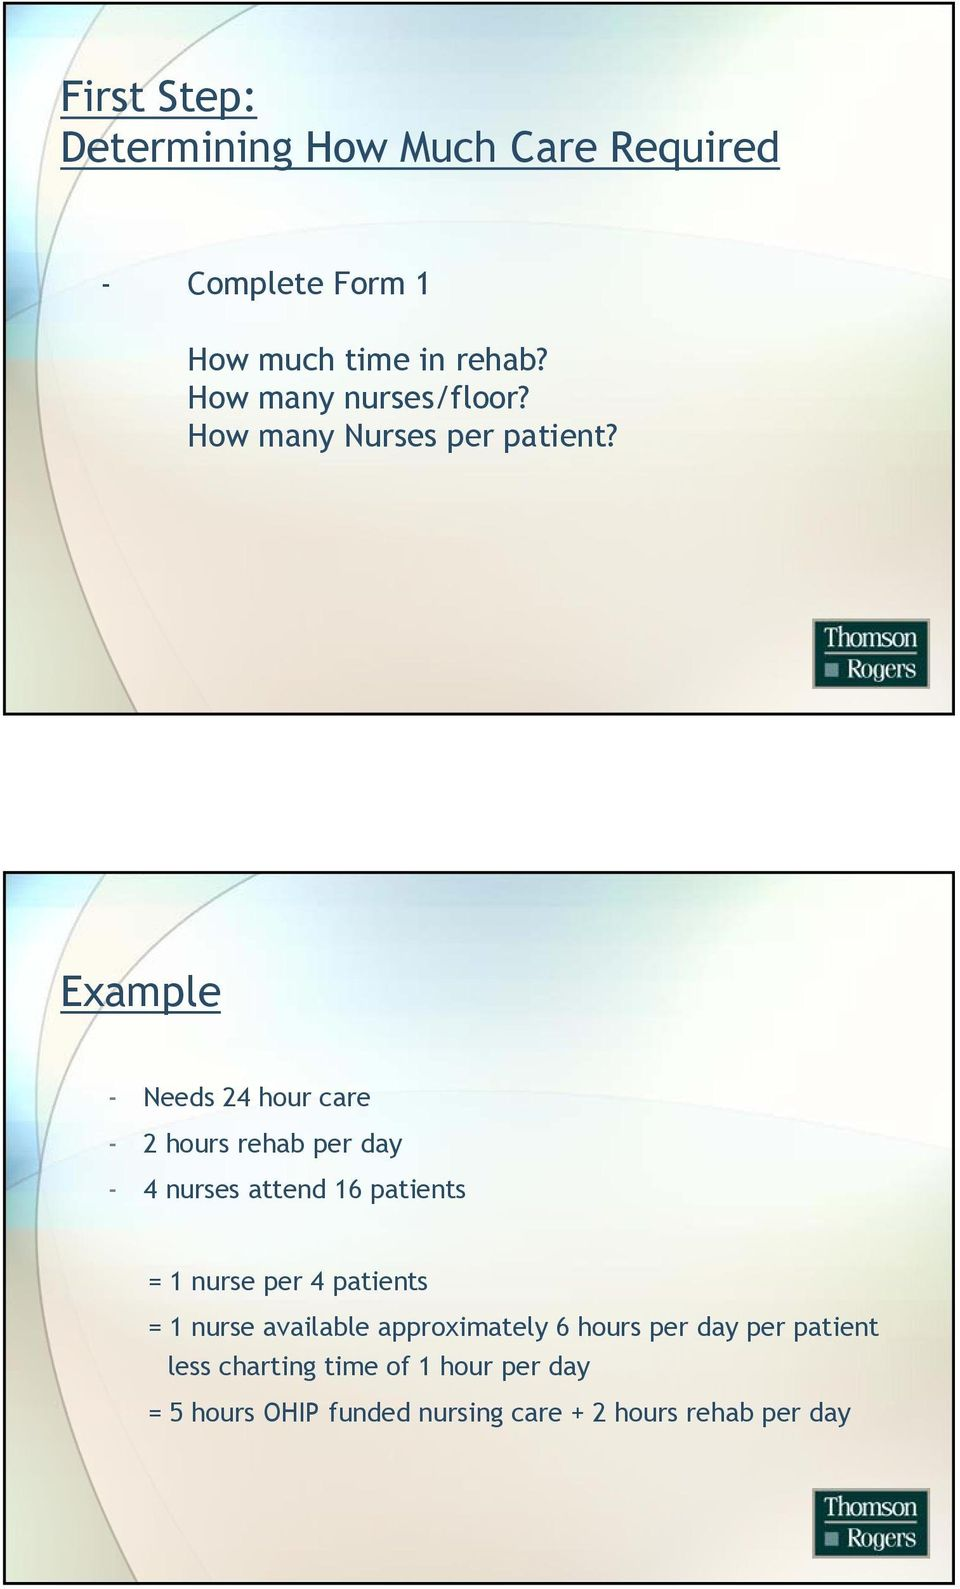 Example - Needs 24 hour care - 2 hours rehab per day - 4 nurses attend 16 patients = 1 nurse per 4